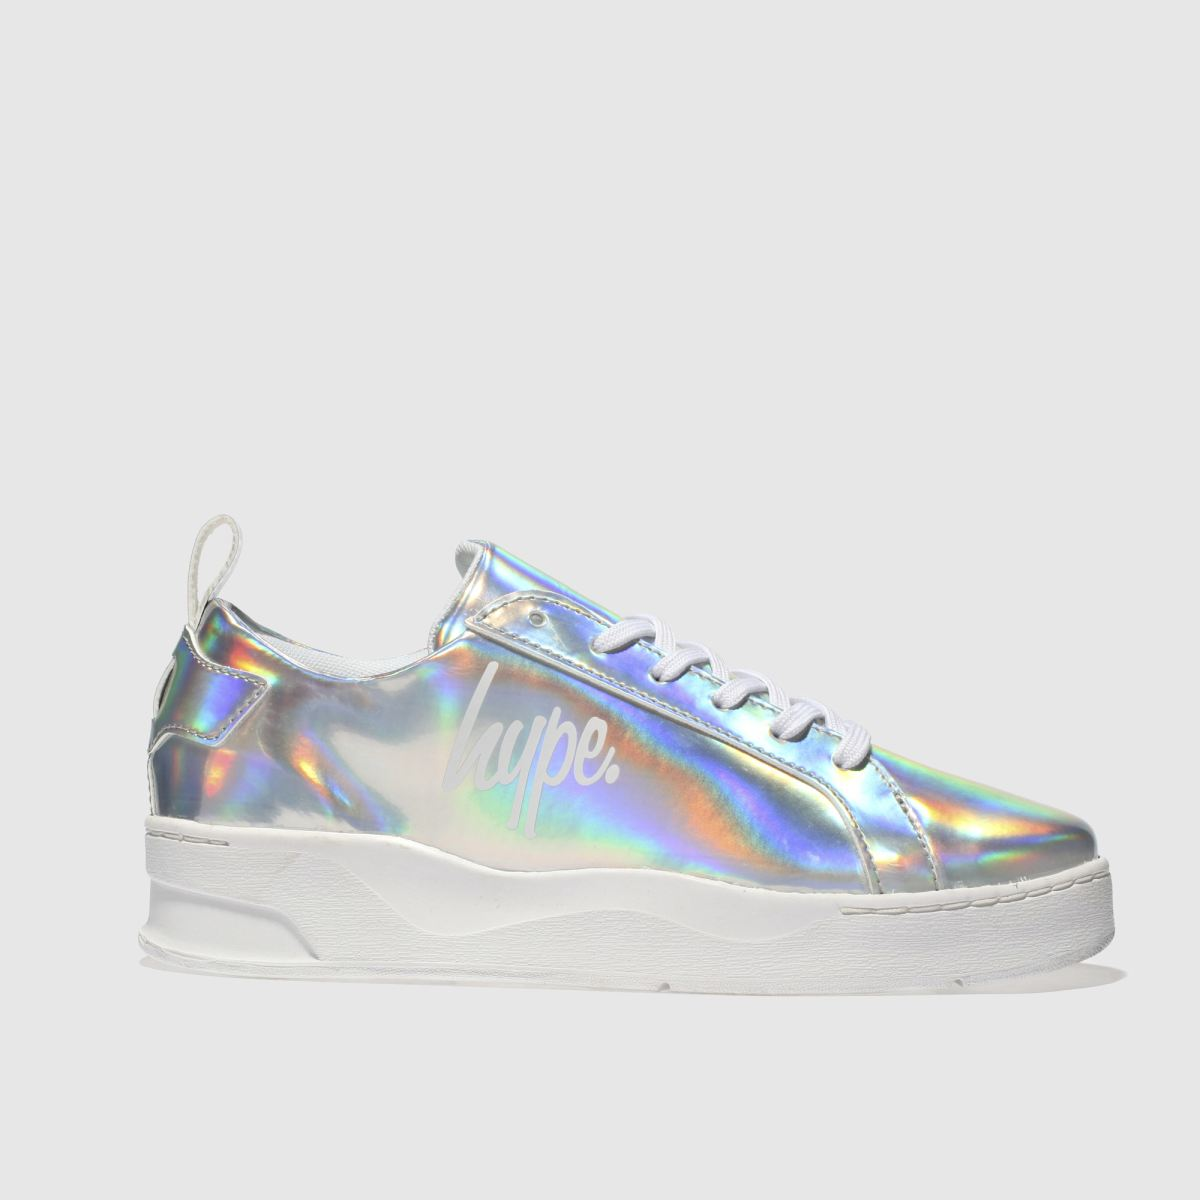 Hype Silver Hologram Reef Trainer Trainers